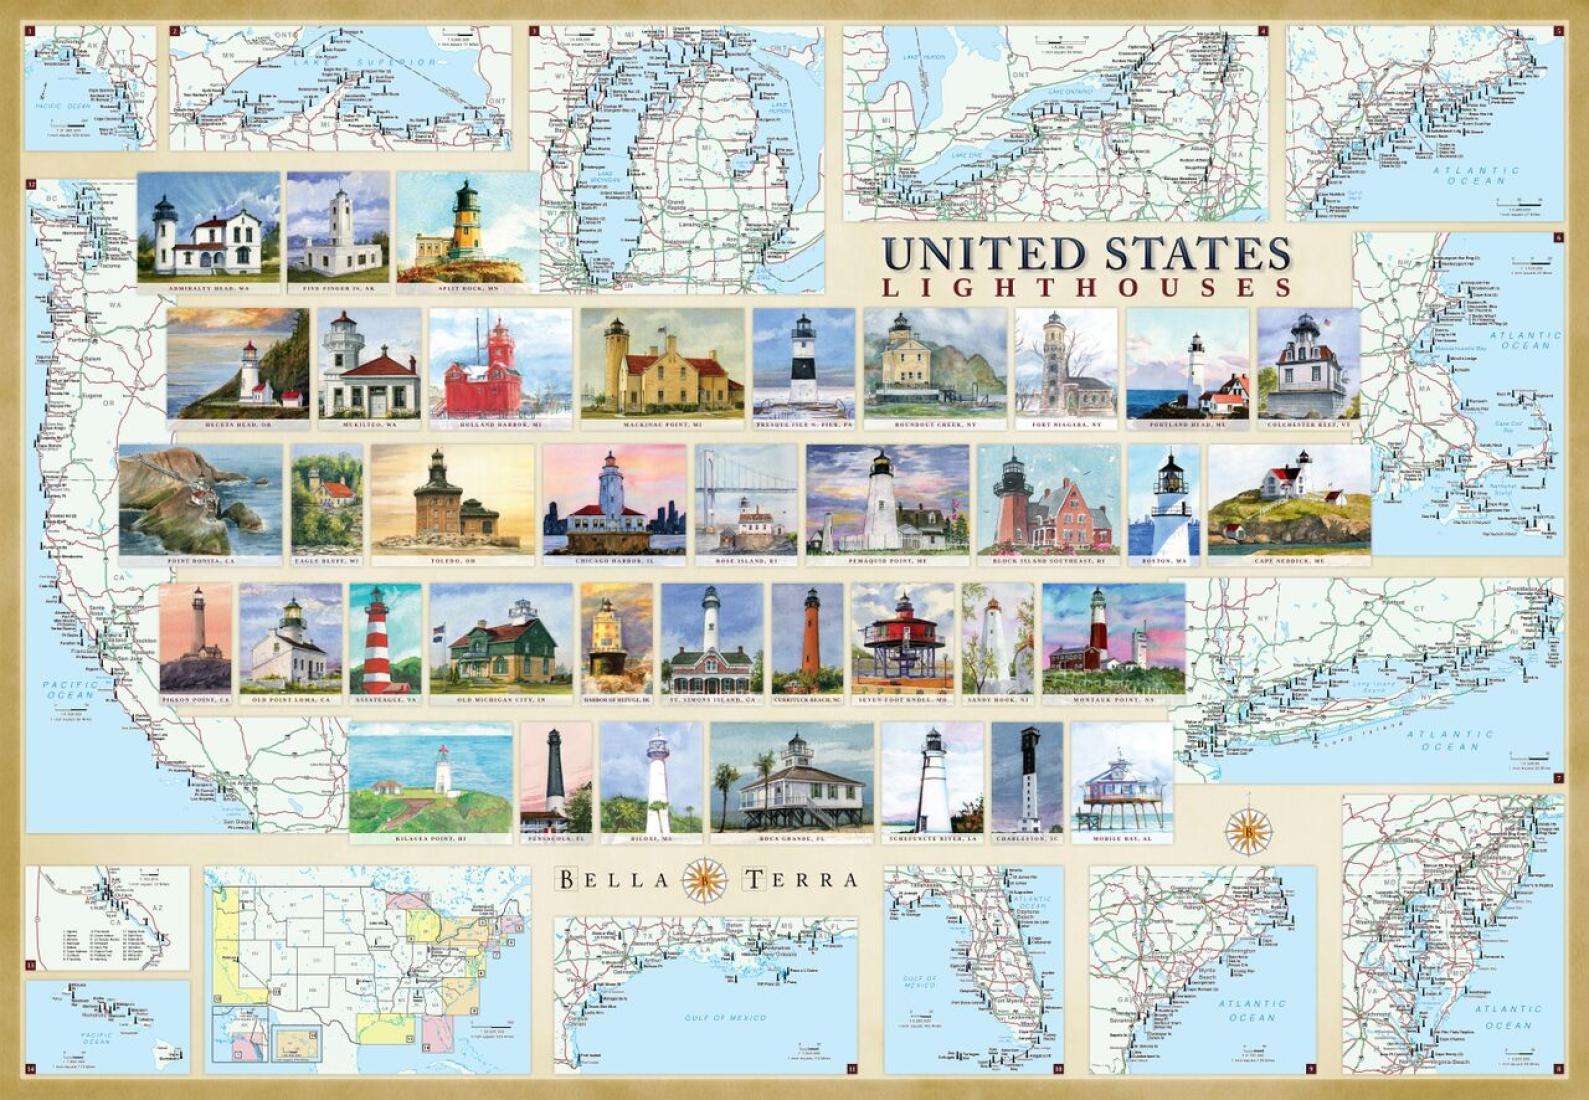 United States Lighthouses Map Laminated Poster By Bella Terra - United maps llc